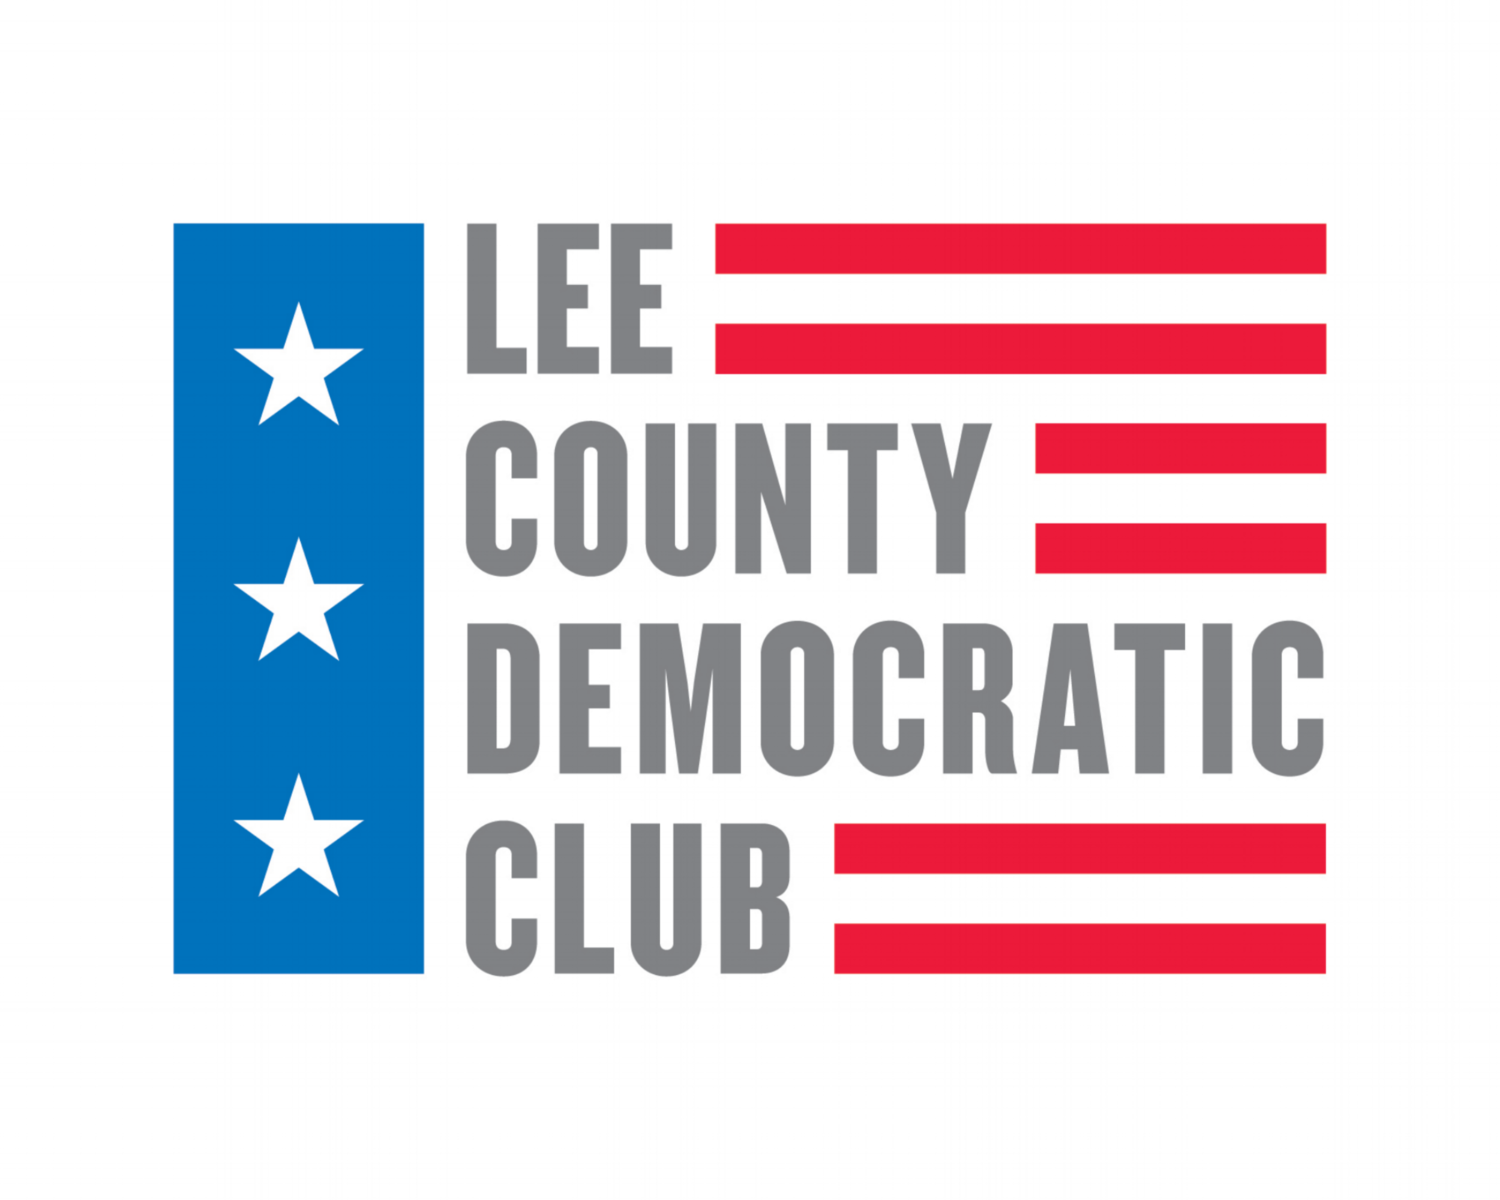 Lee County Democratic Club